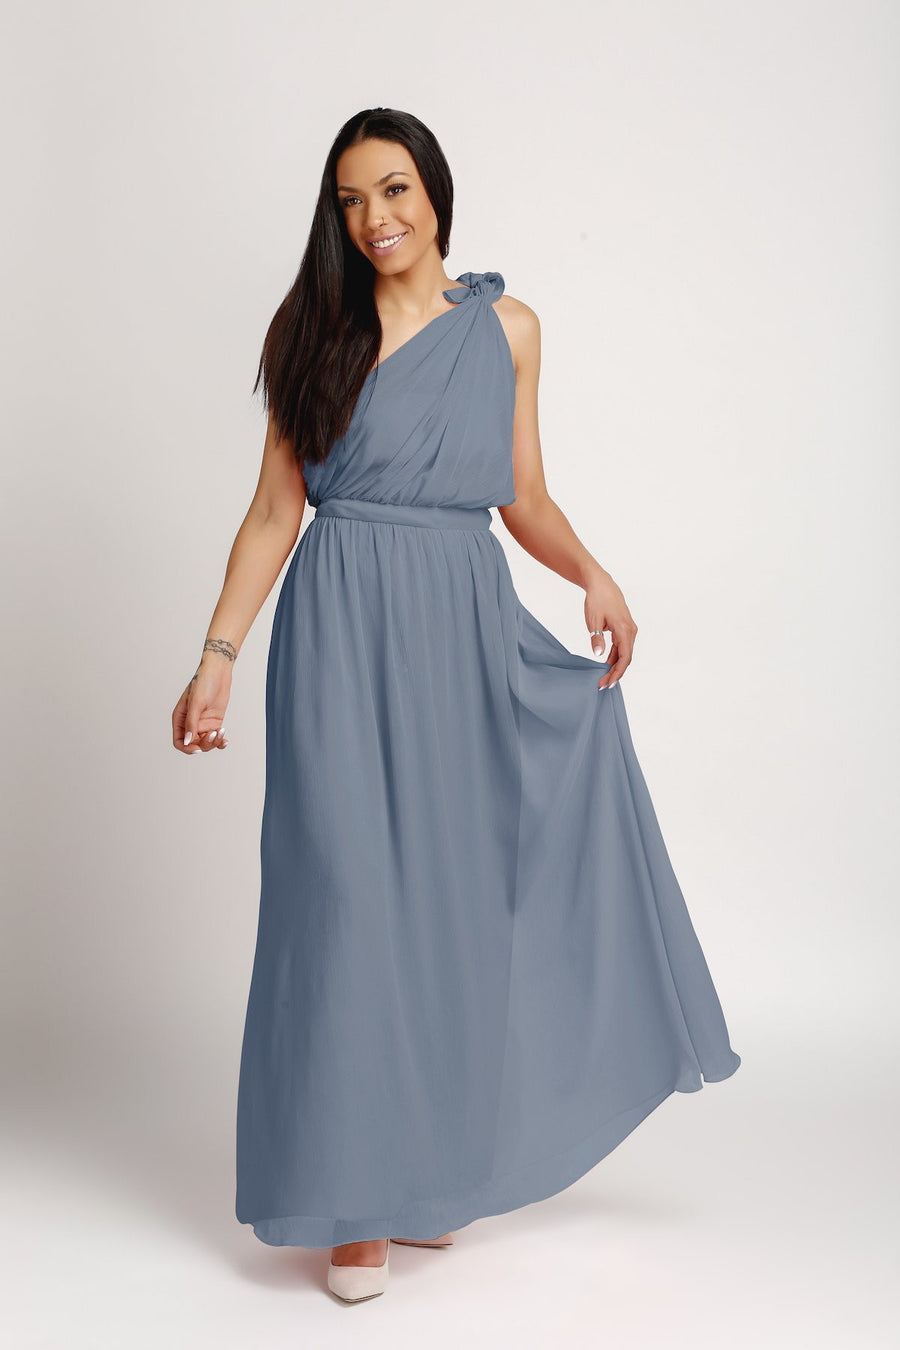 Bridesmaid Dresses - One Shoulder Floor Length Chiffon Bridesmaid Dress - BridesMade